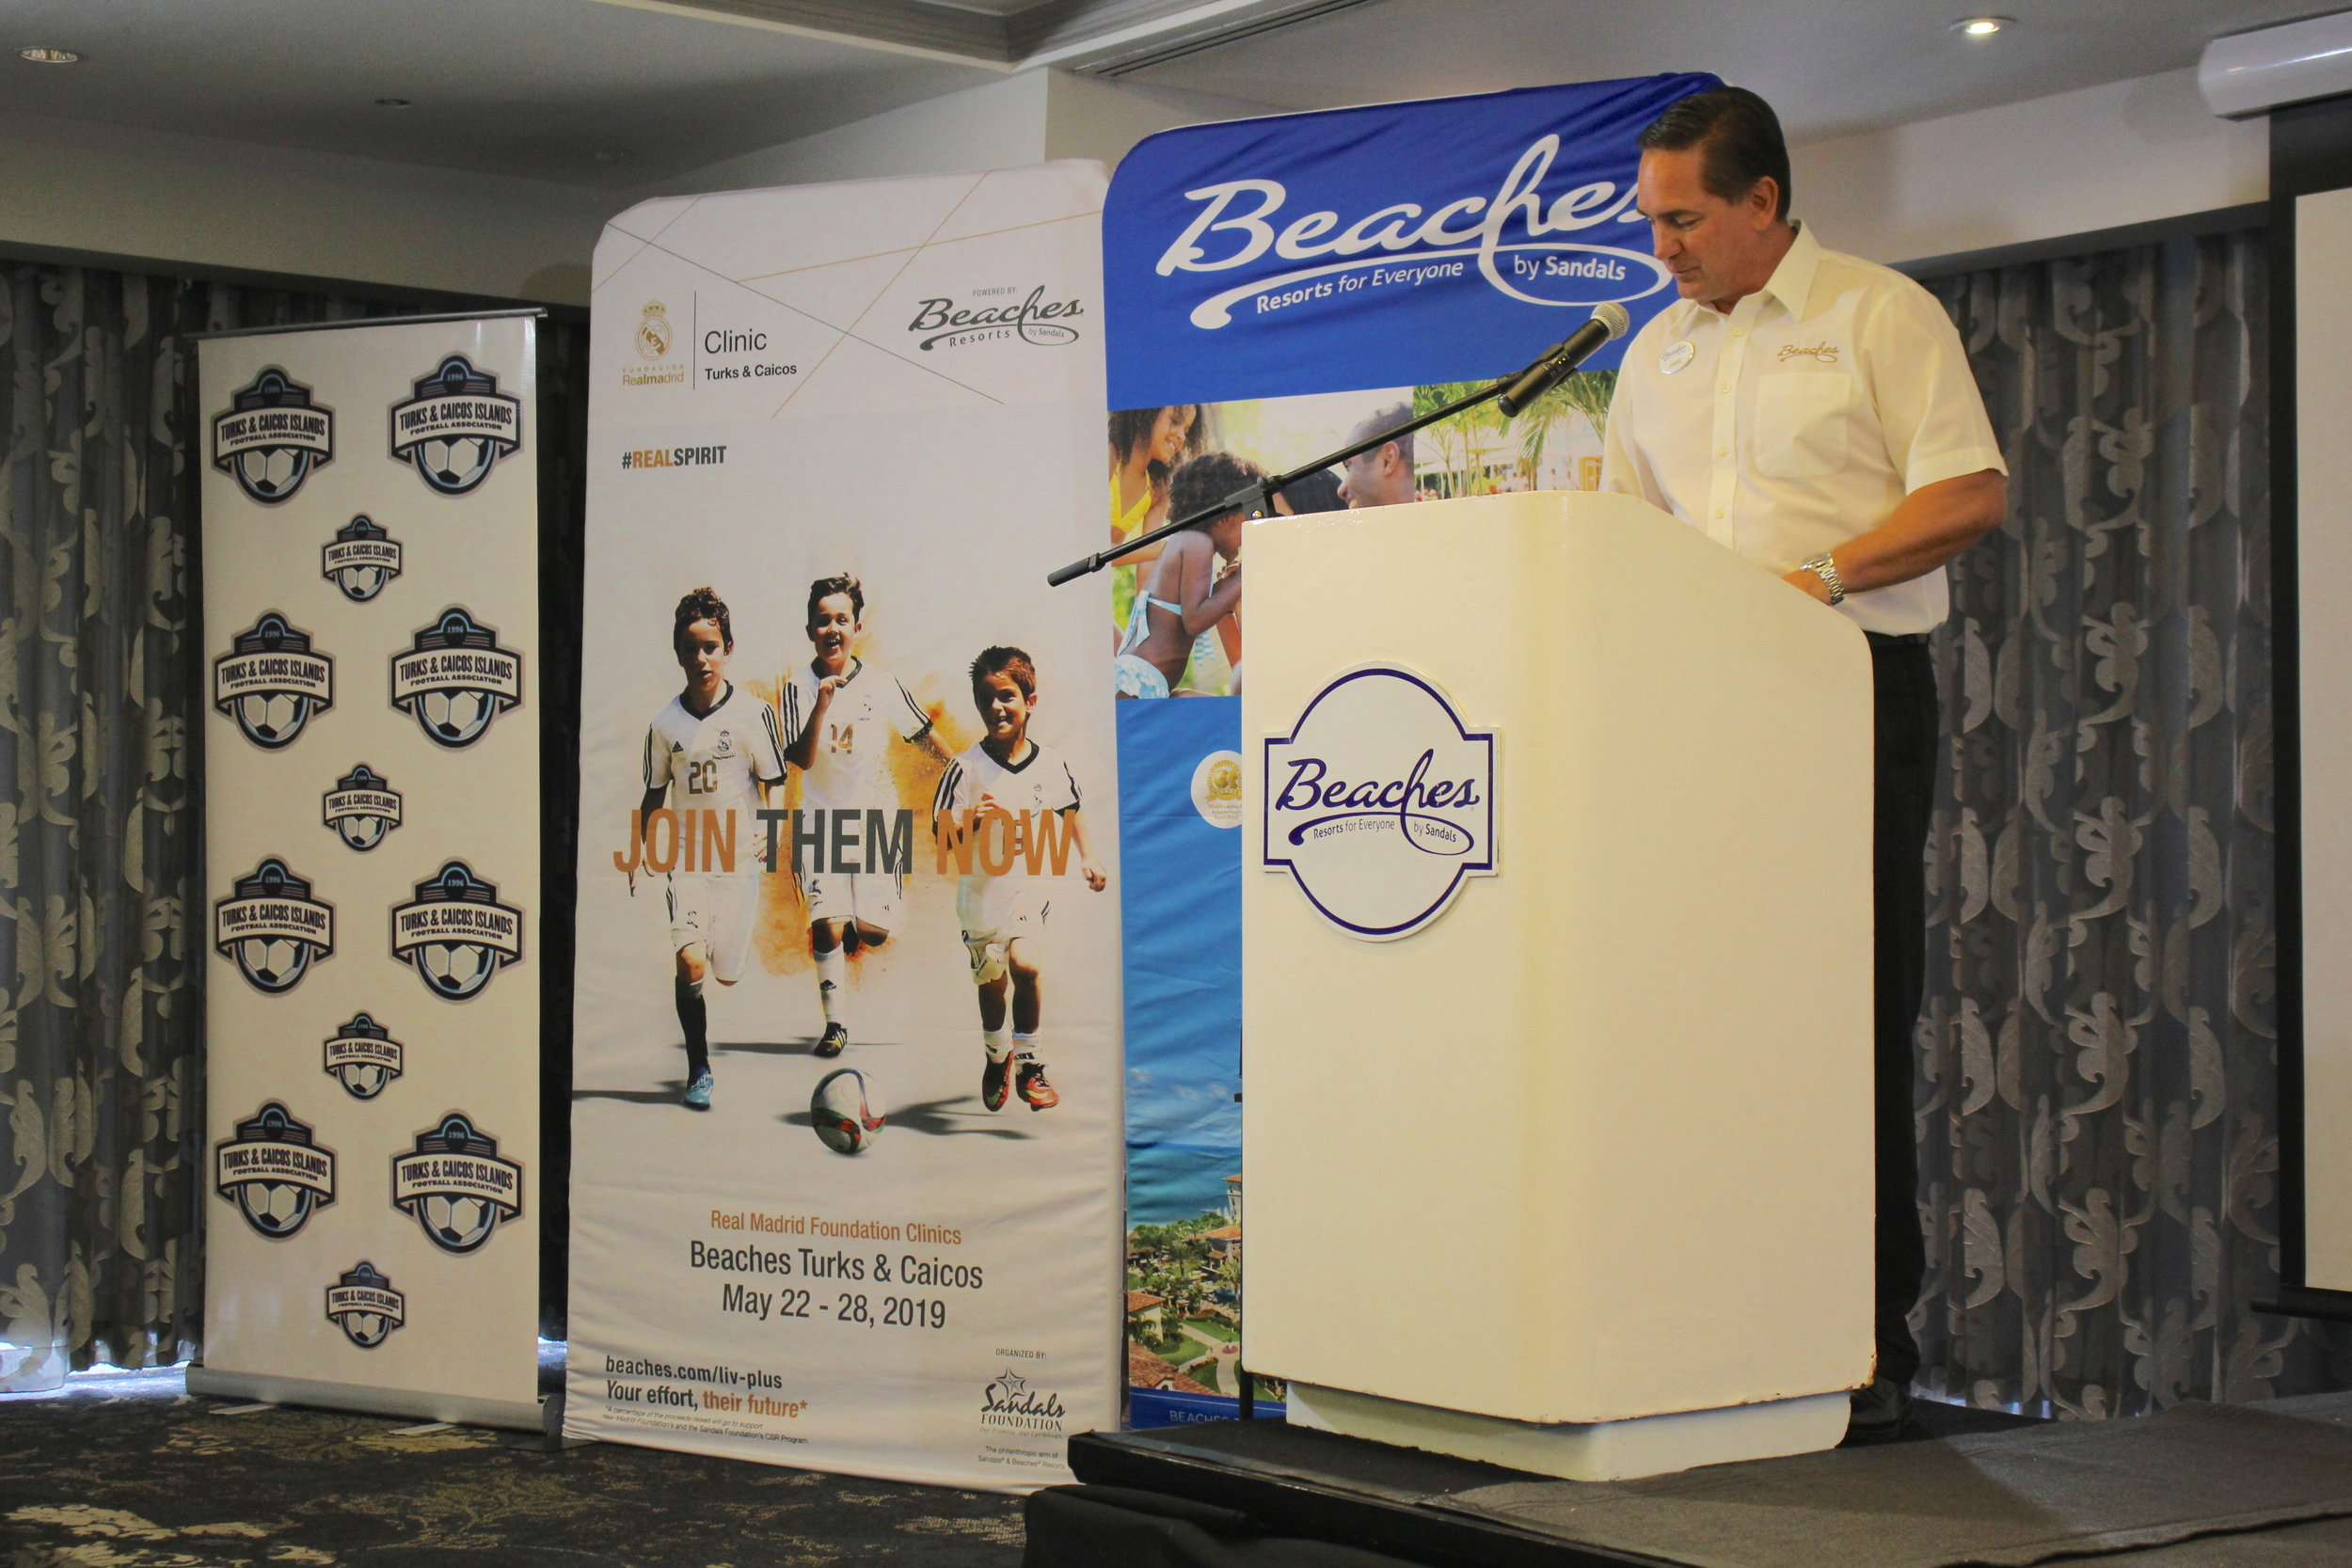 Beaches General Manager- James McAnally